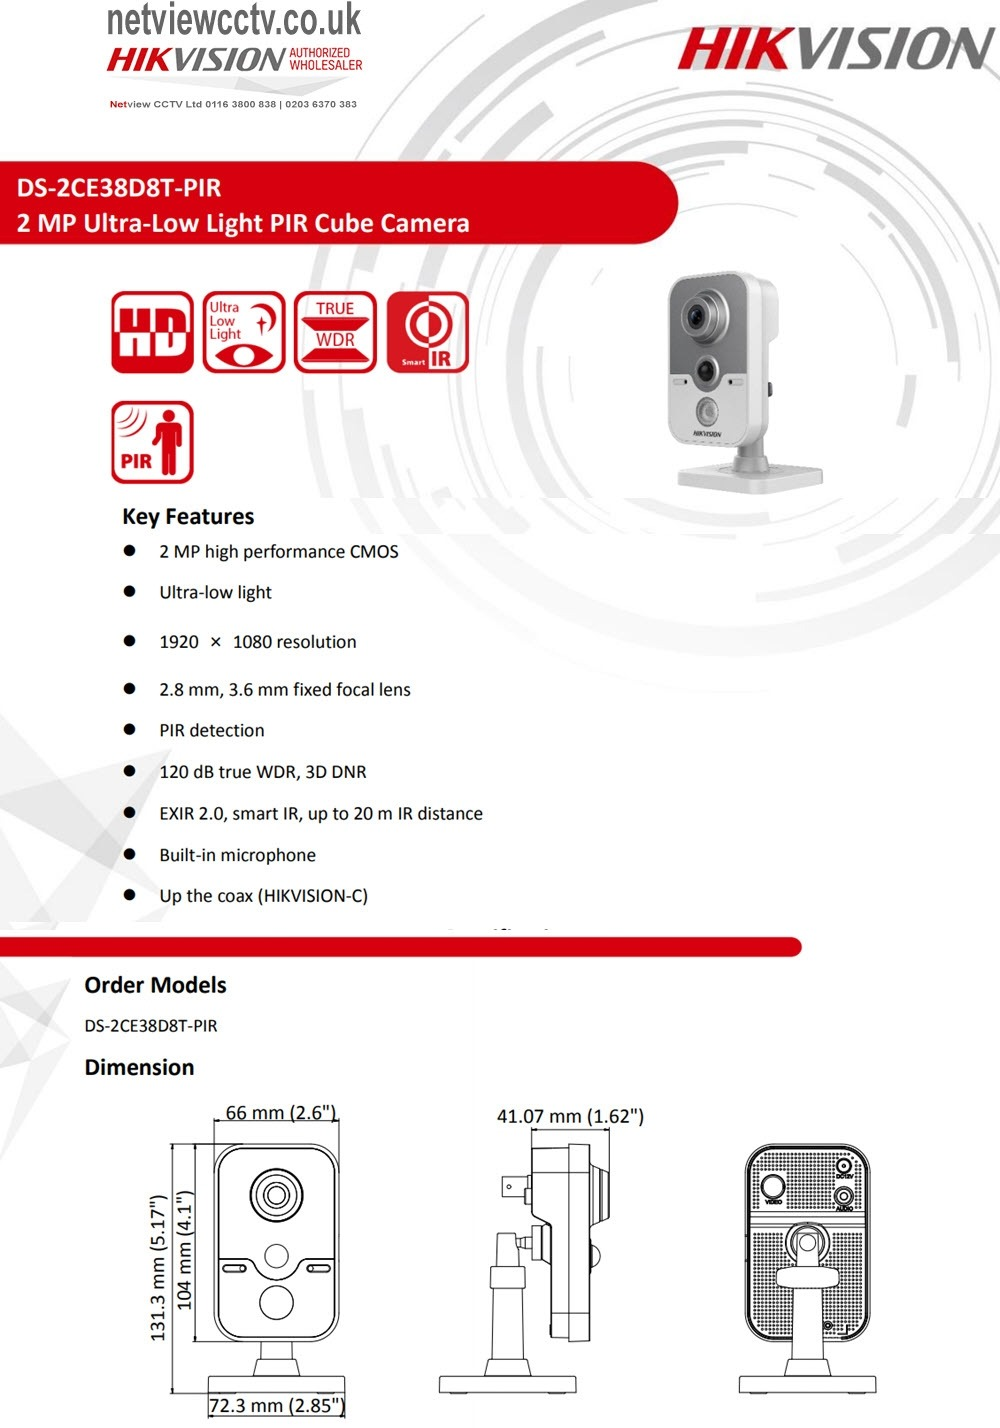 2MP DS-2CE38D8T-PIR Hikvision 2.8mm Ultra-Low Light 103.5° PIR Cube Camera